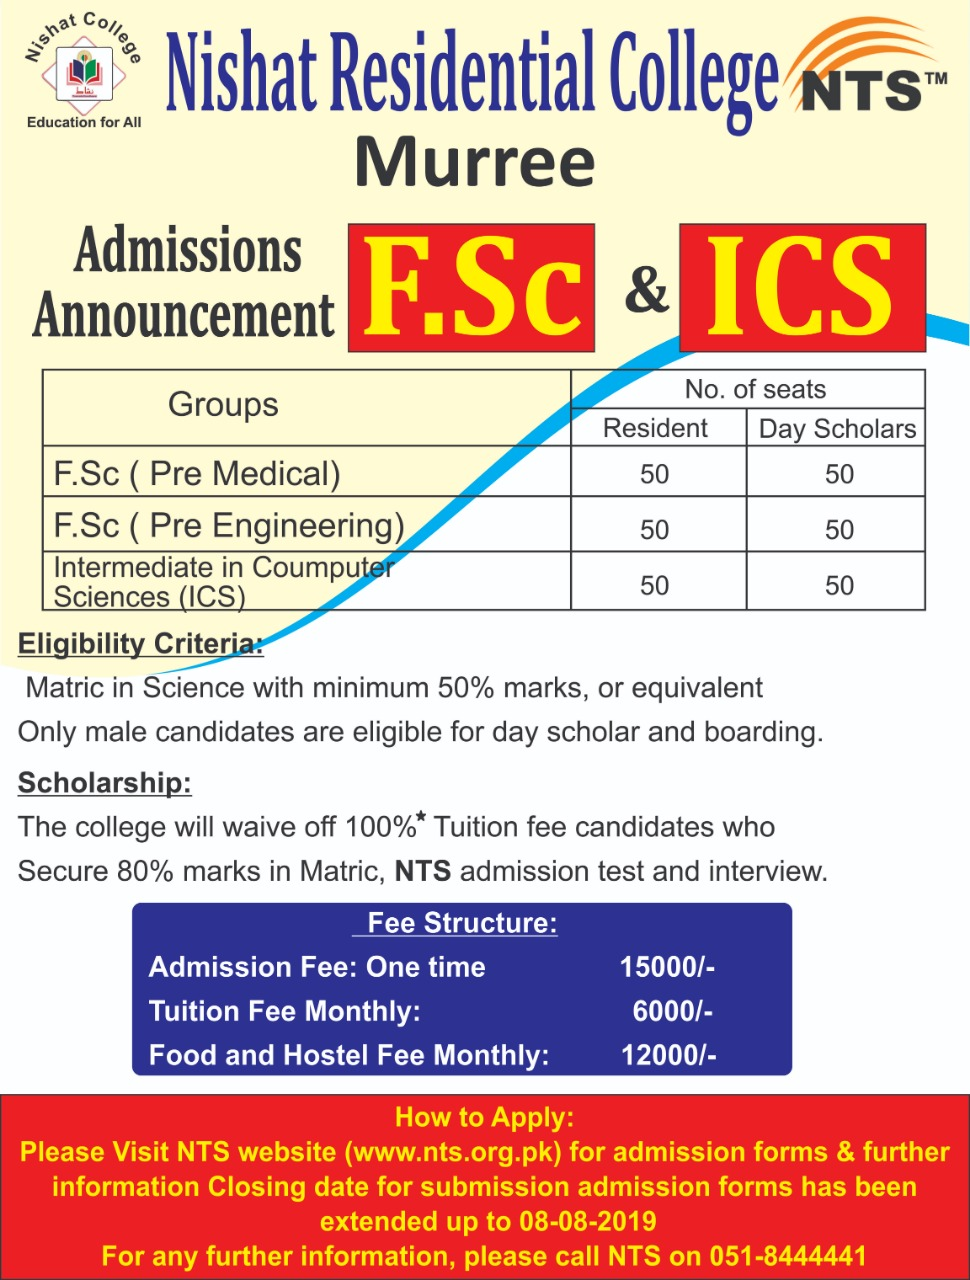 Nishat Residential College Murree NTS Admission 2019 Applcation Form Roll No Slip Download